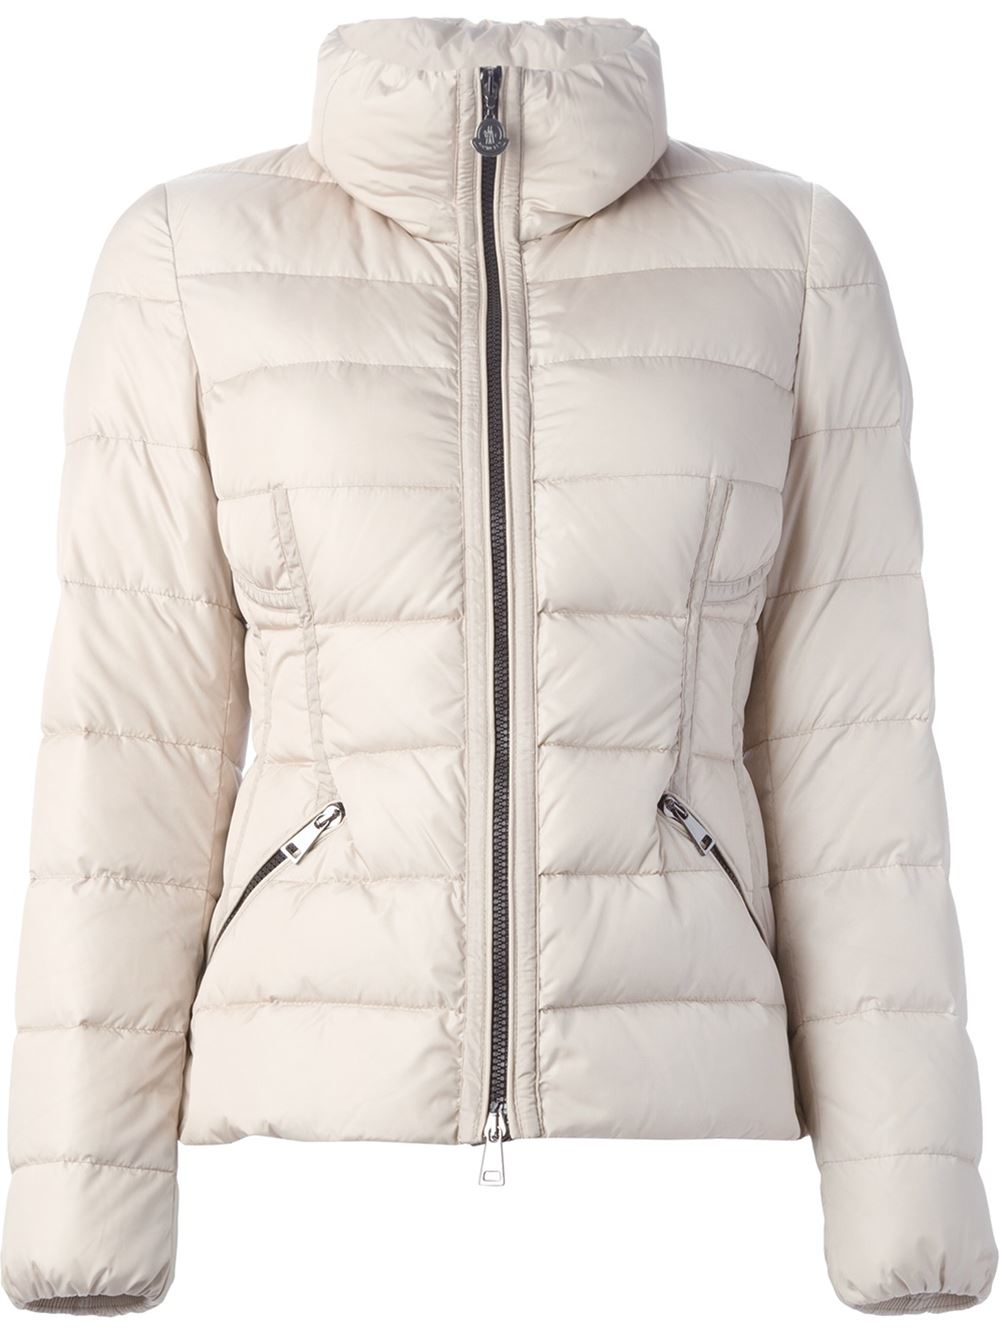 moncler padded jacket women's